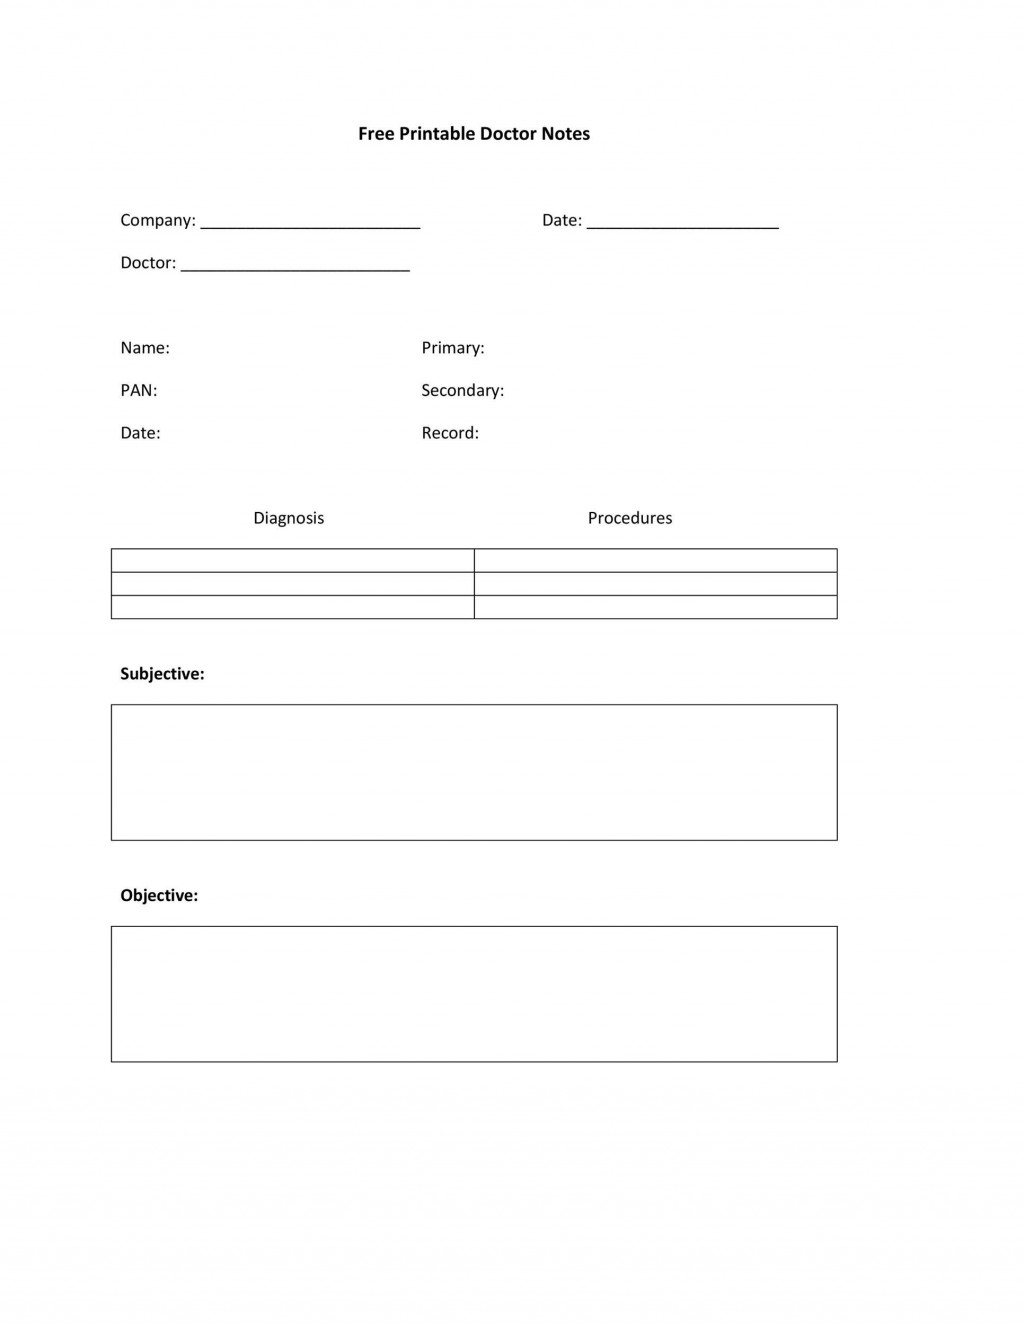 005 Fascinating Doctor Note Template Free Download Idea  FakeLarge